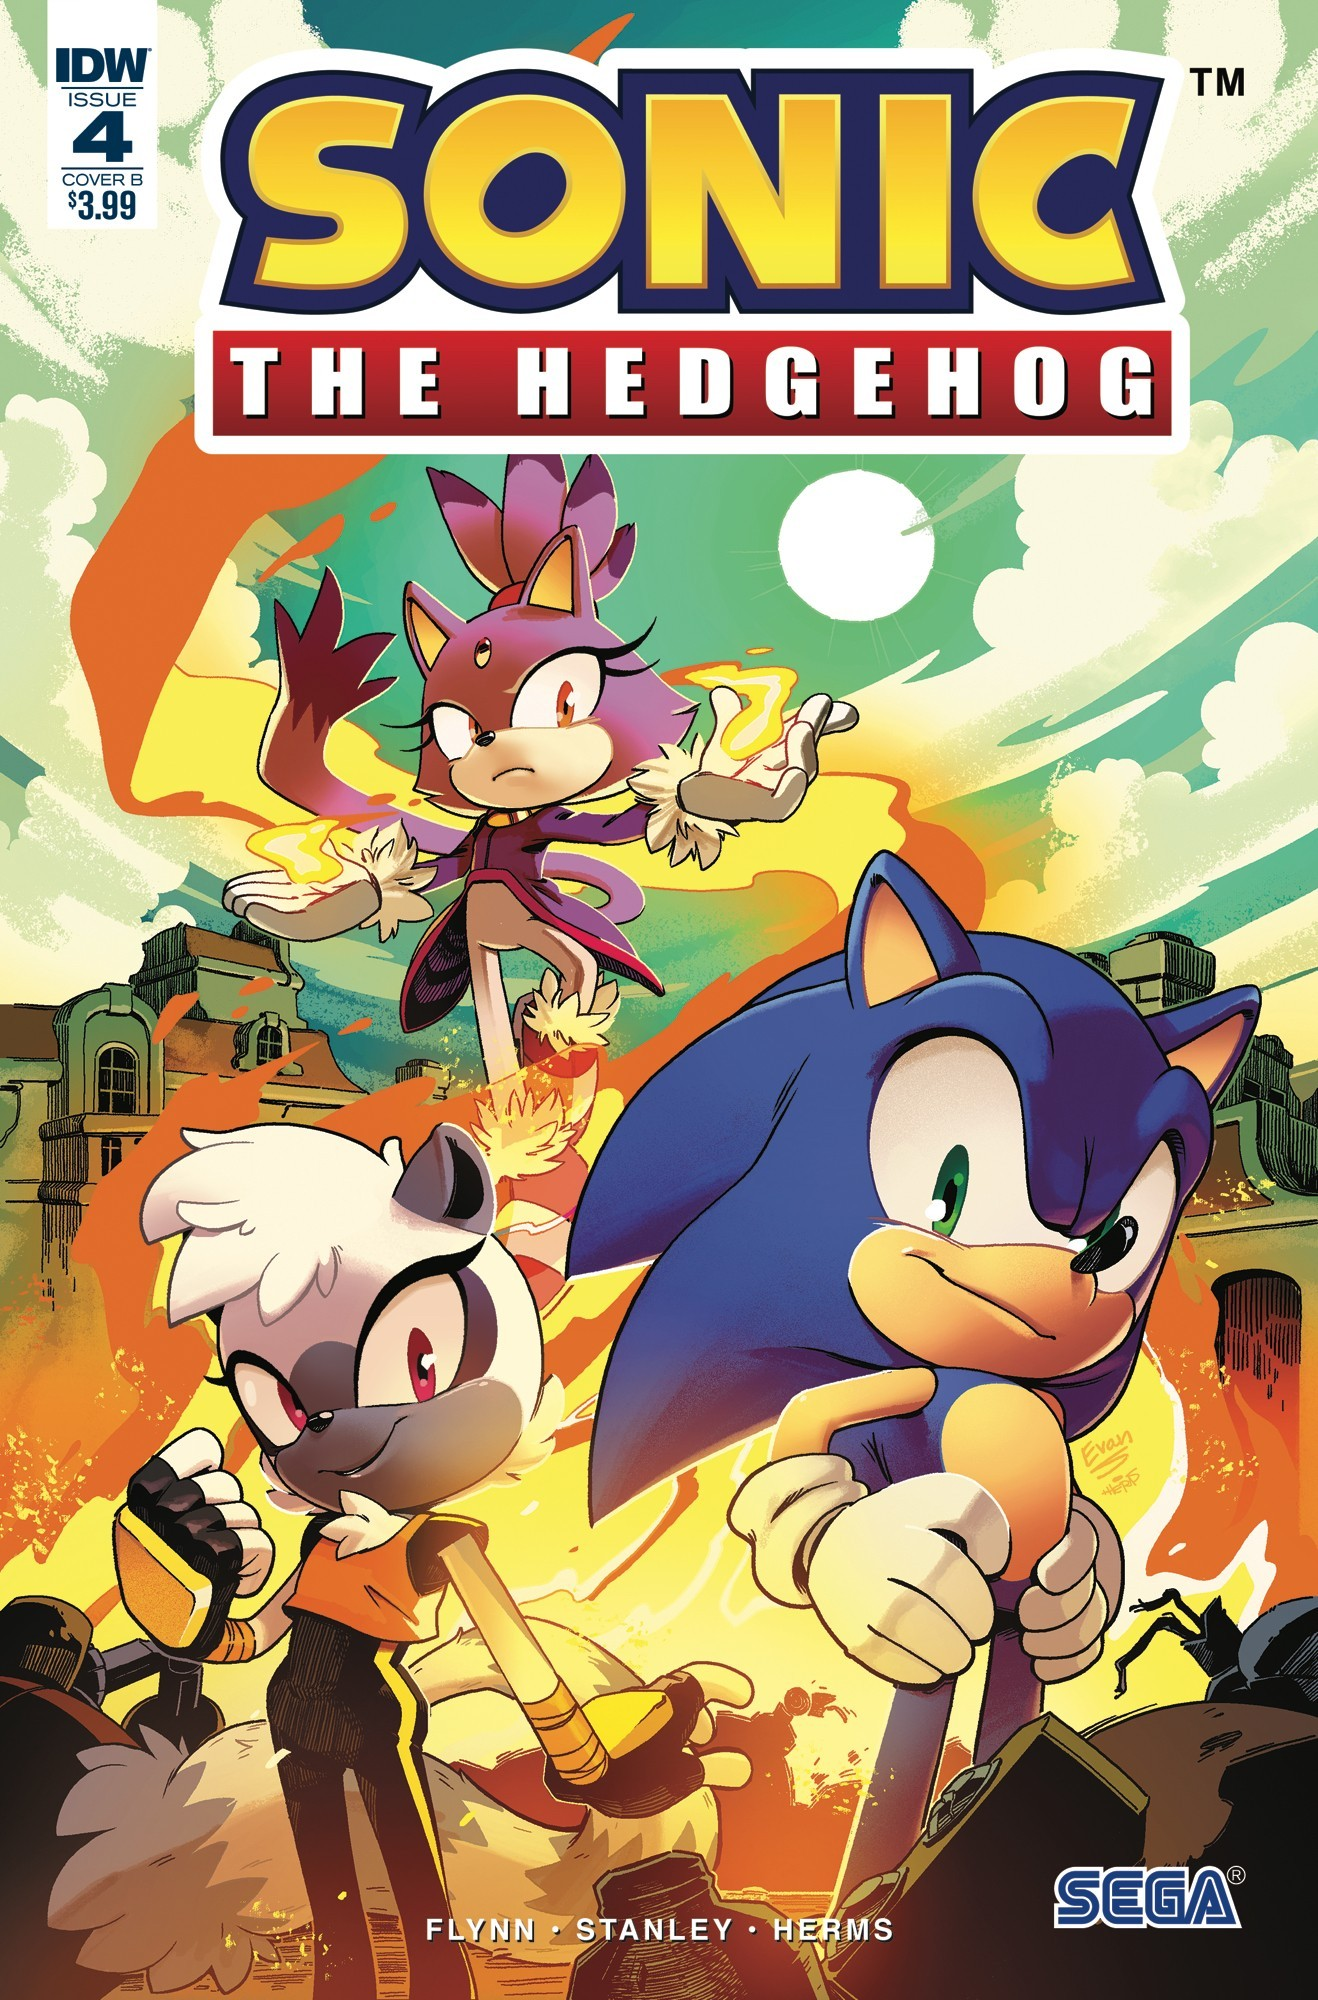 IDW Sonic the Hedgehog Issue 4